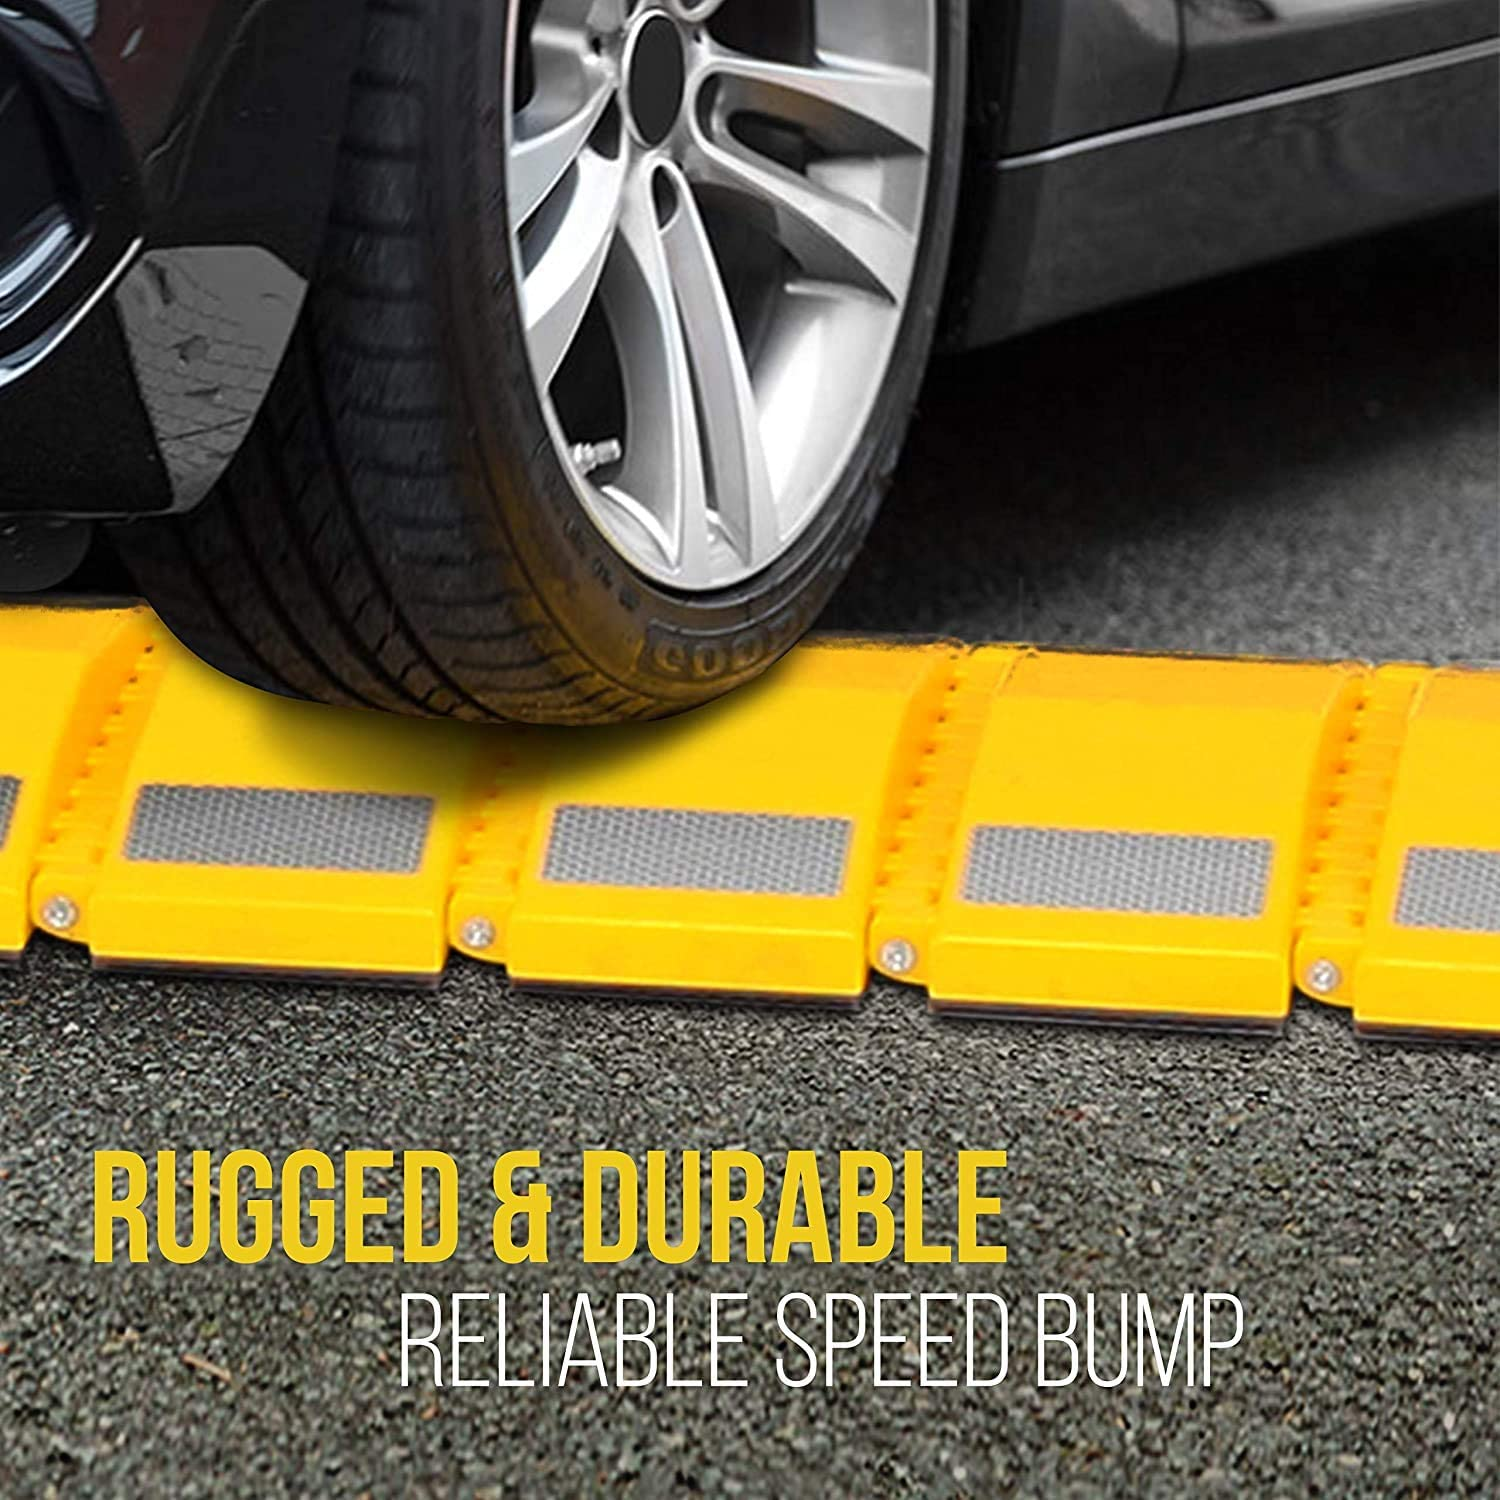 GRELWT Portable Vehicle Traffic Speed Bump 10 Feet Heavy Duty Reflective Plastic Humps